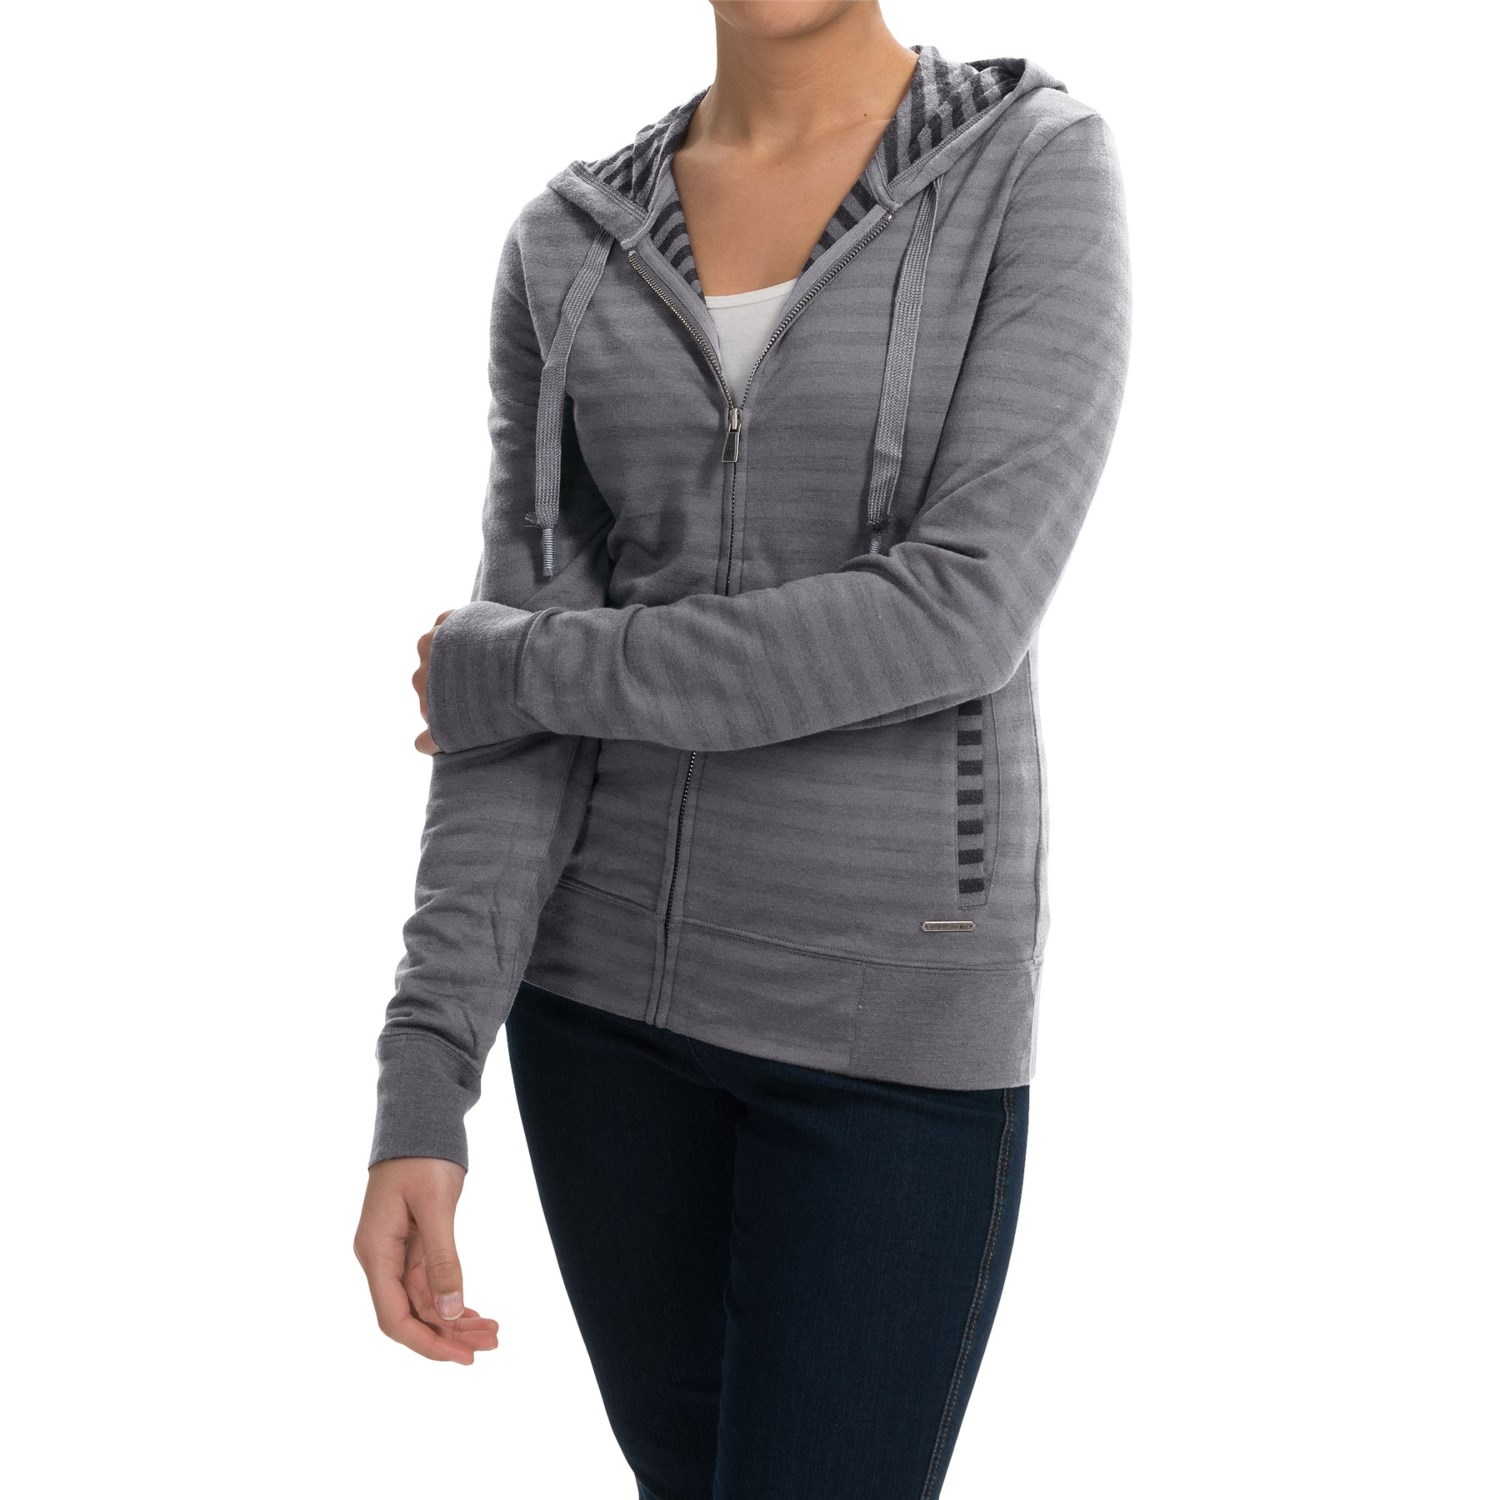 Merino wool hoodie australia gray cardigan sweater for Merino wool shirt womens